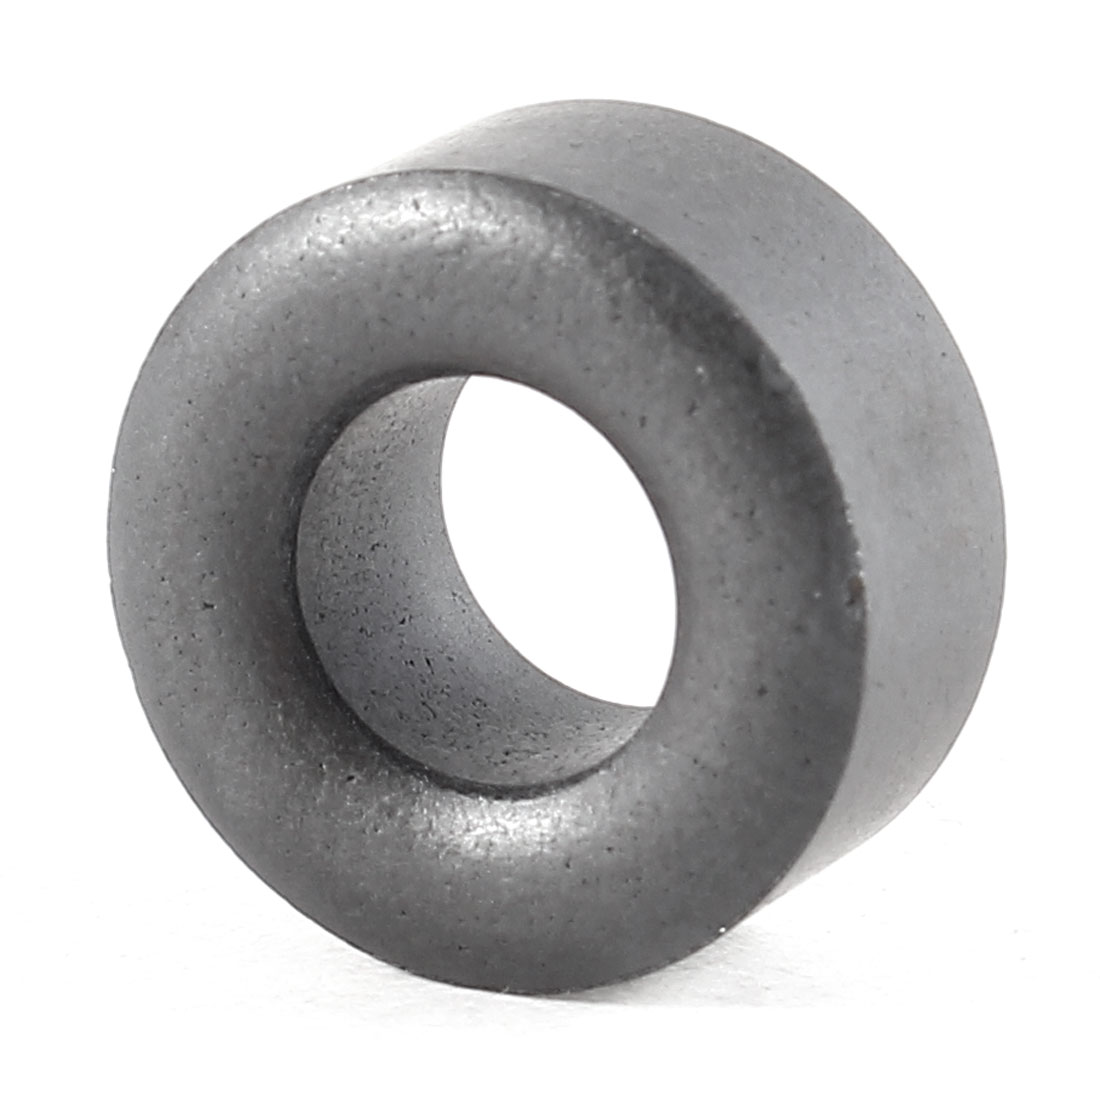 20x10x10mm Toroid Ferrite Magnetic Core Dark Gray for Power Transformers